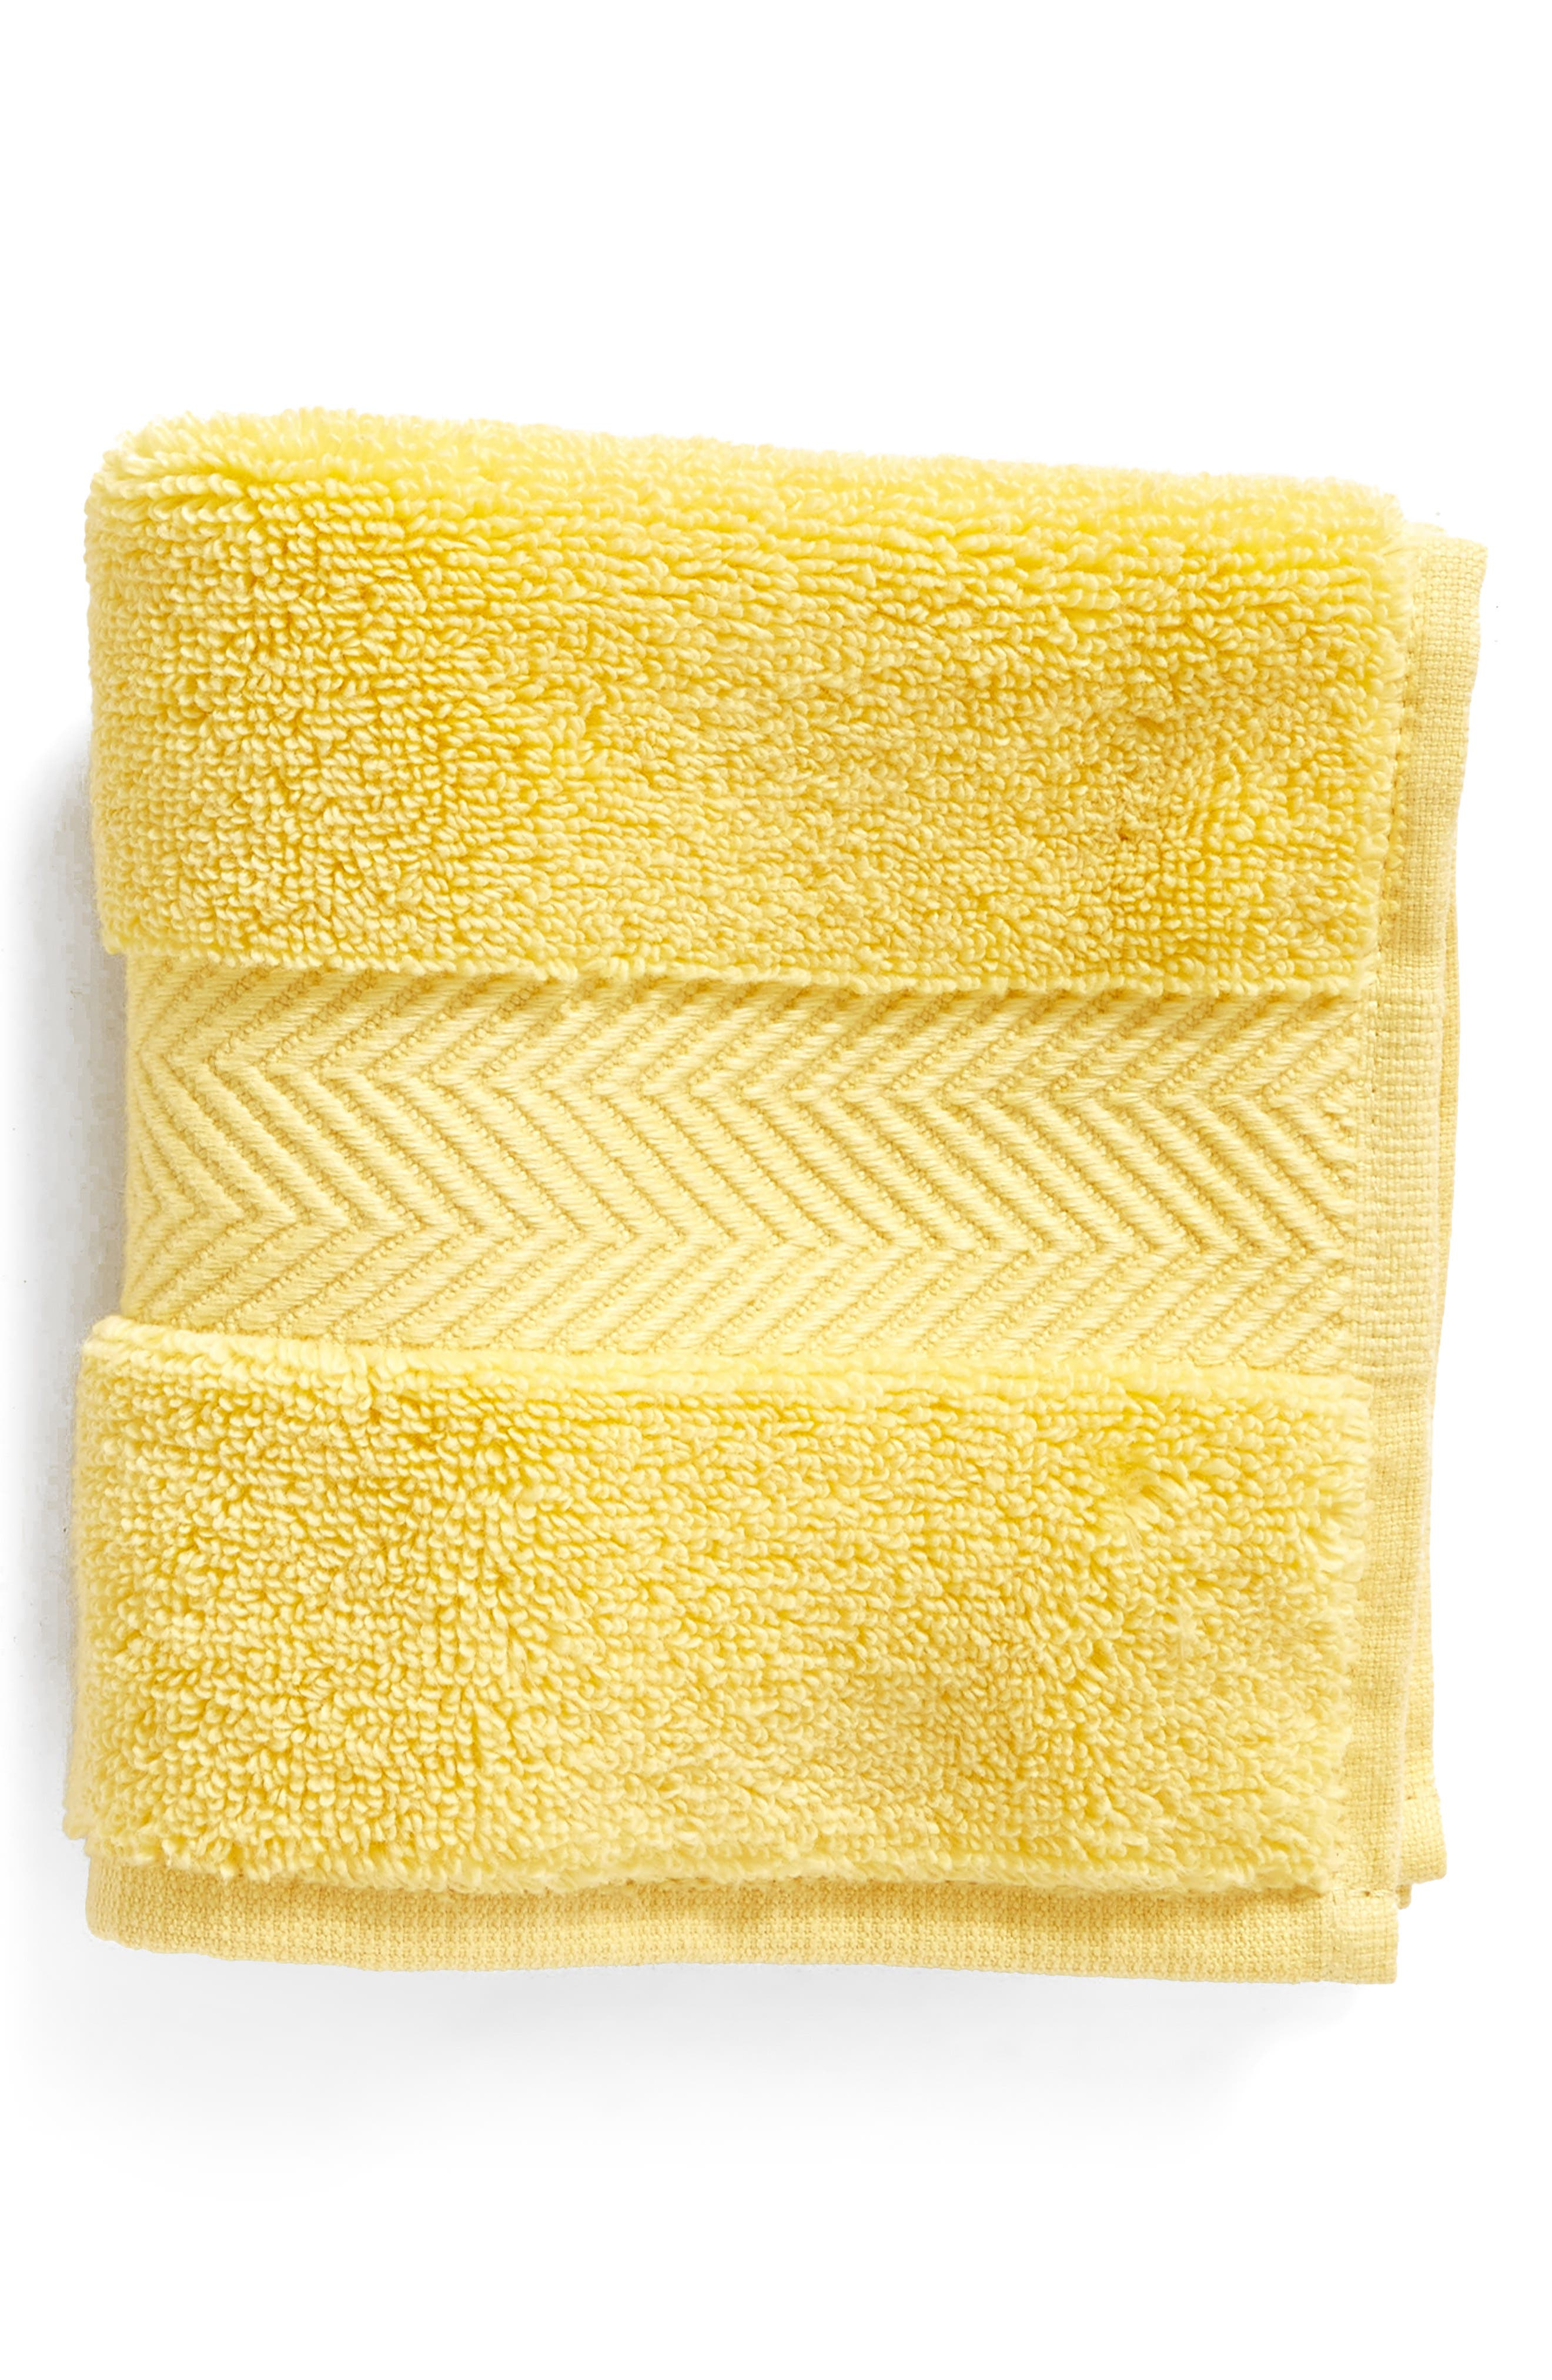 Hydrocotton Washcloth,                             Alternate thumbnail 85, color,